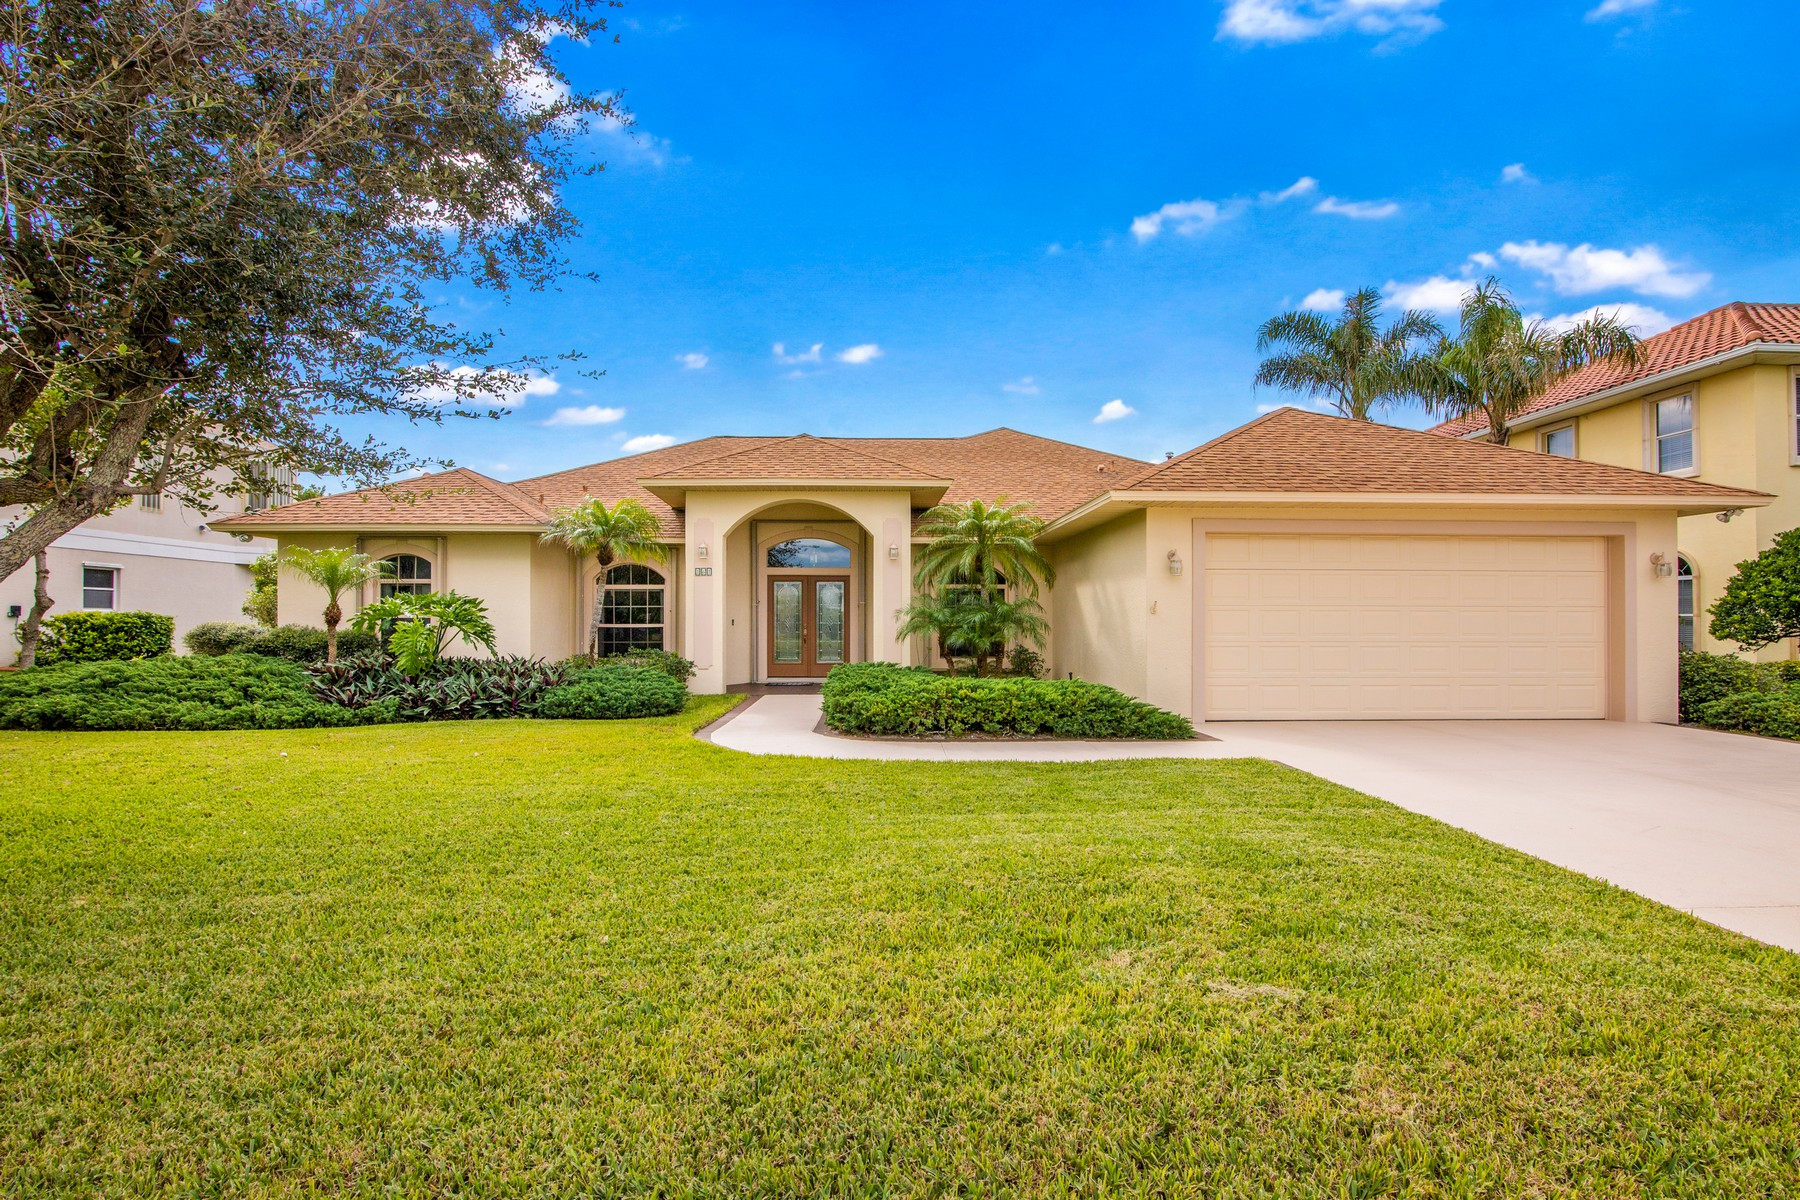 Single Family Homes for Sale at Open and Bright Home in Perfect Location 161 Seaglass Drive Melbourne Beach, Florida 32951 United States